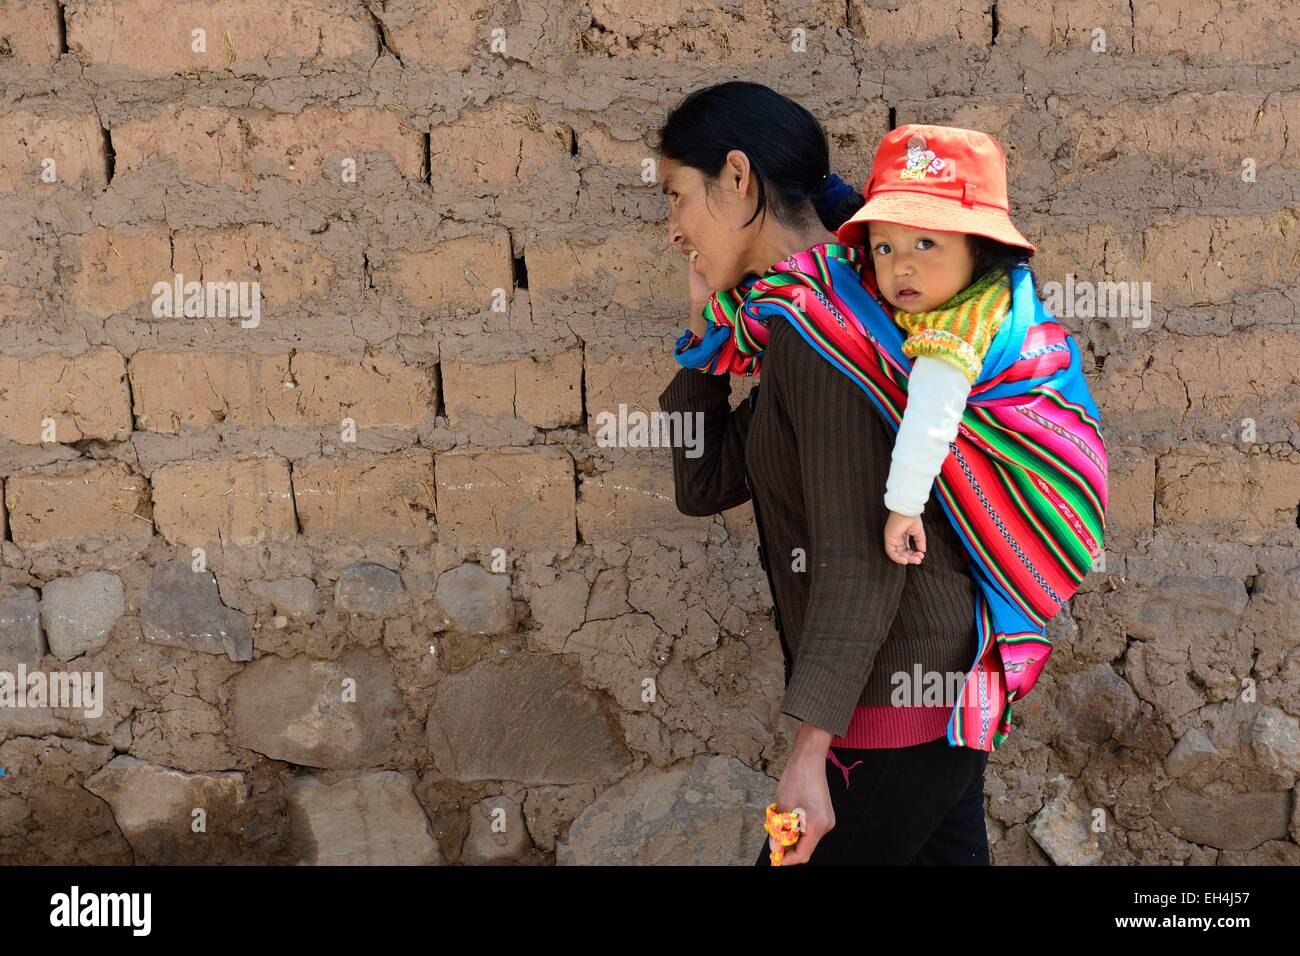 Peru, Cuzco province, Cuzco, listed as World Heritage by UNESCO, Peruvian and her daughter wrapped in a poncho - Stock Image